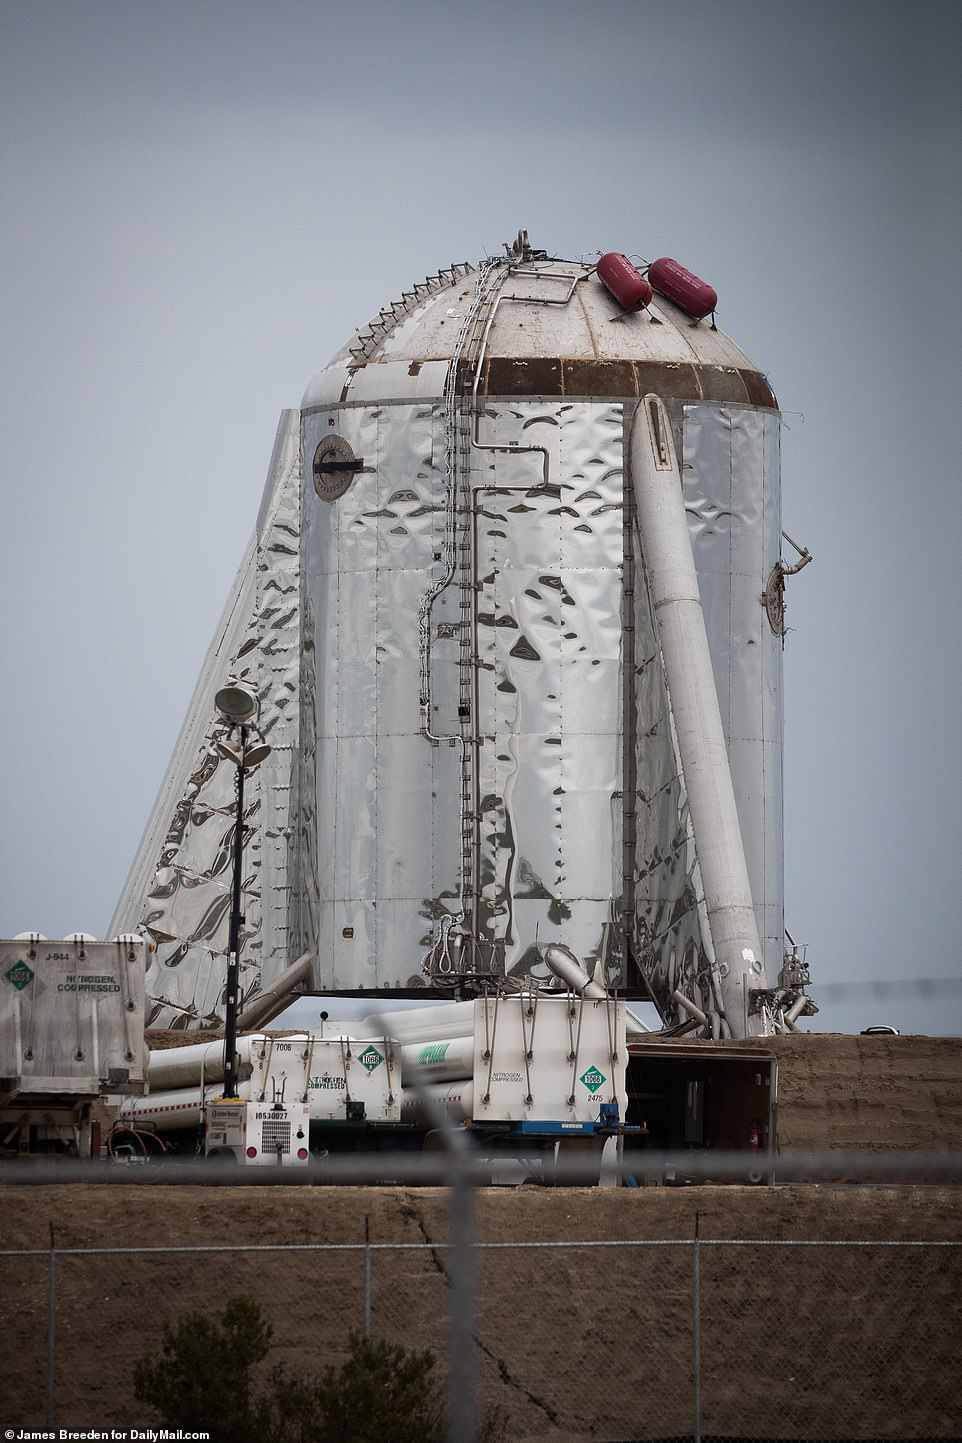 Elon Musk said SpaceX chose to omit a nosecone from the Starhopper prototype (pictured Wednesday) after it was toppled off of the spacecraft as a result of strong wind gusts earlier this year